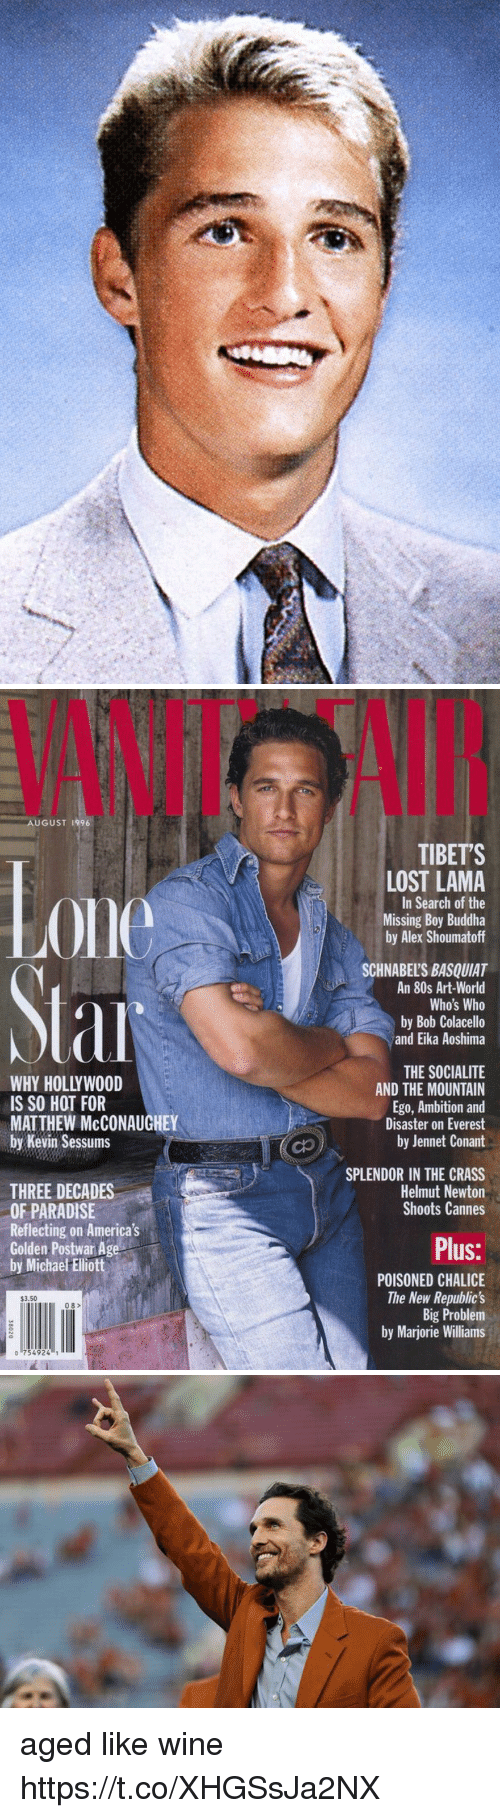 michae: VANIT  AI  AUGUST 1996  TIBETS  0ne  LOST LAMA  In Search of the  Missing Boy Buddha  by Alex Shoumatoff  SCHNABEL'S BASQUIAT  An 80s Art-World  Who's Who  by Bob Colacello  and Eika Aoshima  WHY HOLLYWOOD  IS SO HOT FOR  MATTHEW McCONAUGHEY  by Kevin Sessums  THE SOCIALITE  AND THE MOUNTAIN  Ego, Ambition and  Disaster on Everest  by Jennet Conant  SPLENDOR IN THE CRASS  Helmut Newton  Shoots Cannes  THREE DECADES  OF PARADISE  Reflecting on America's  Golden Postwar Age  by Michae Ellott  Plus:  POISONED CHALICE  The New Republic's  Big Problem  by Marjorie Williams  $3.50  08>  o 754924 aged like wine https://t.co/XHGSsJa2NX